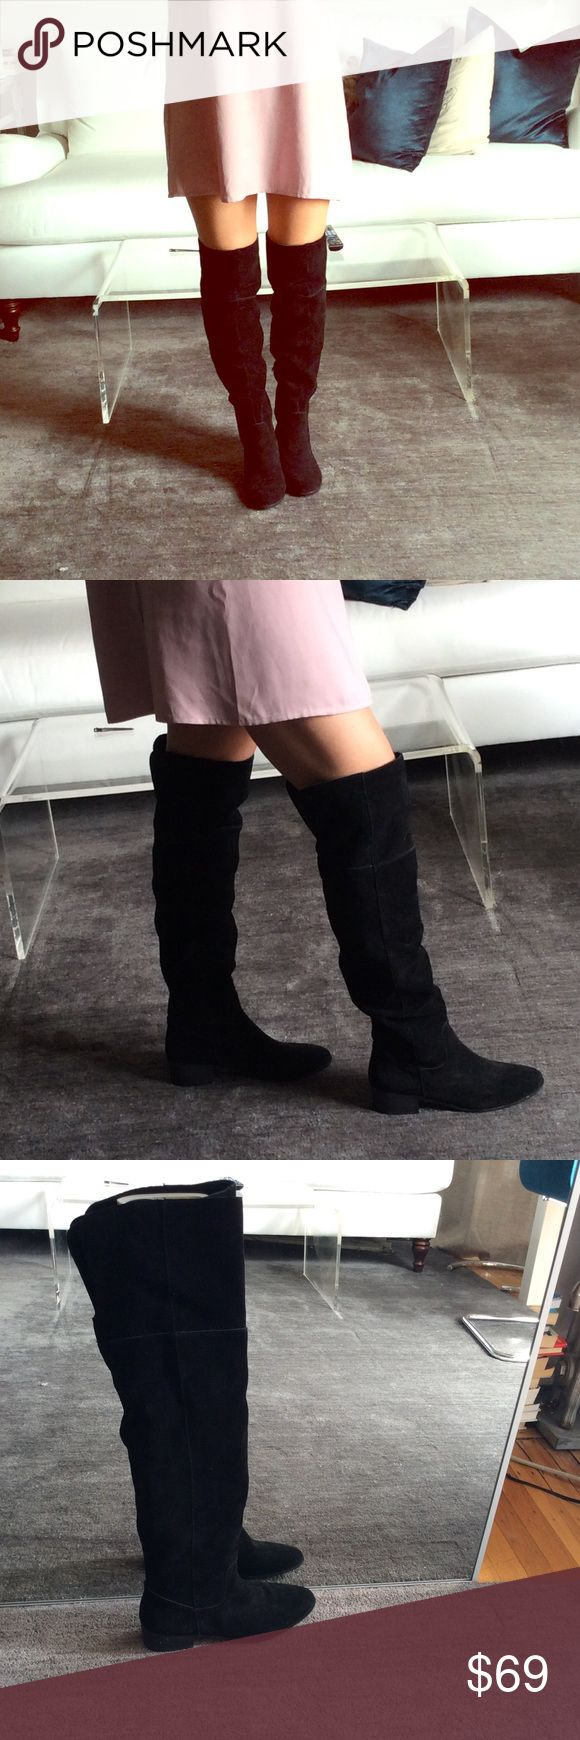 Steve Madden Tyga Over The Knee Black Boots 8.5 Black Suede Steve Madden Tyga Over The Knee Boots 8.5 Great with leggings, a sweater dress, skinny jeans, so versatile! Brand new, never worn! Steve Madden Shoes Over the Knee Boots